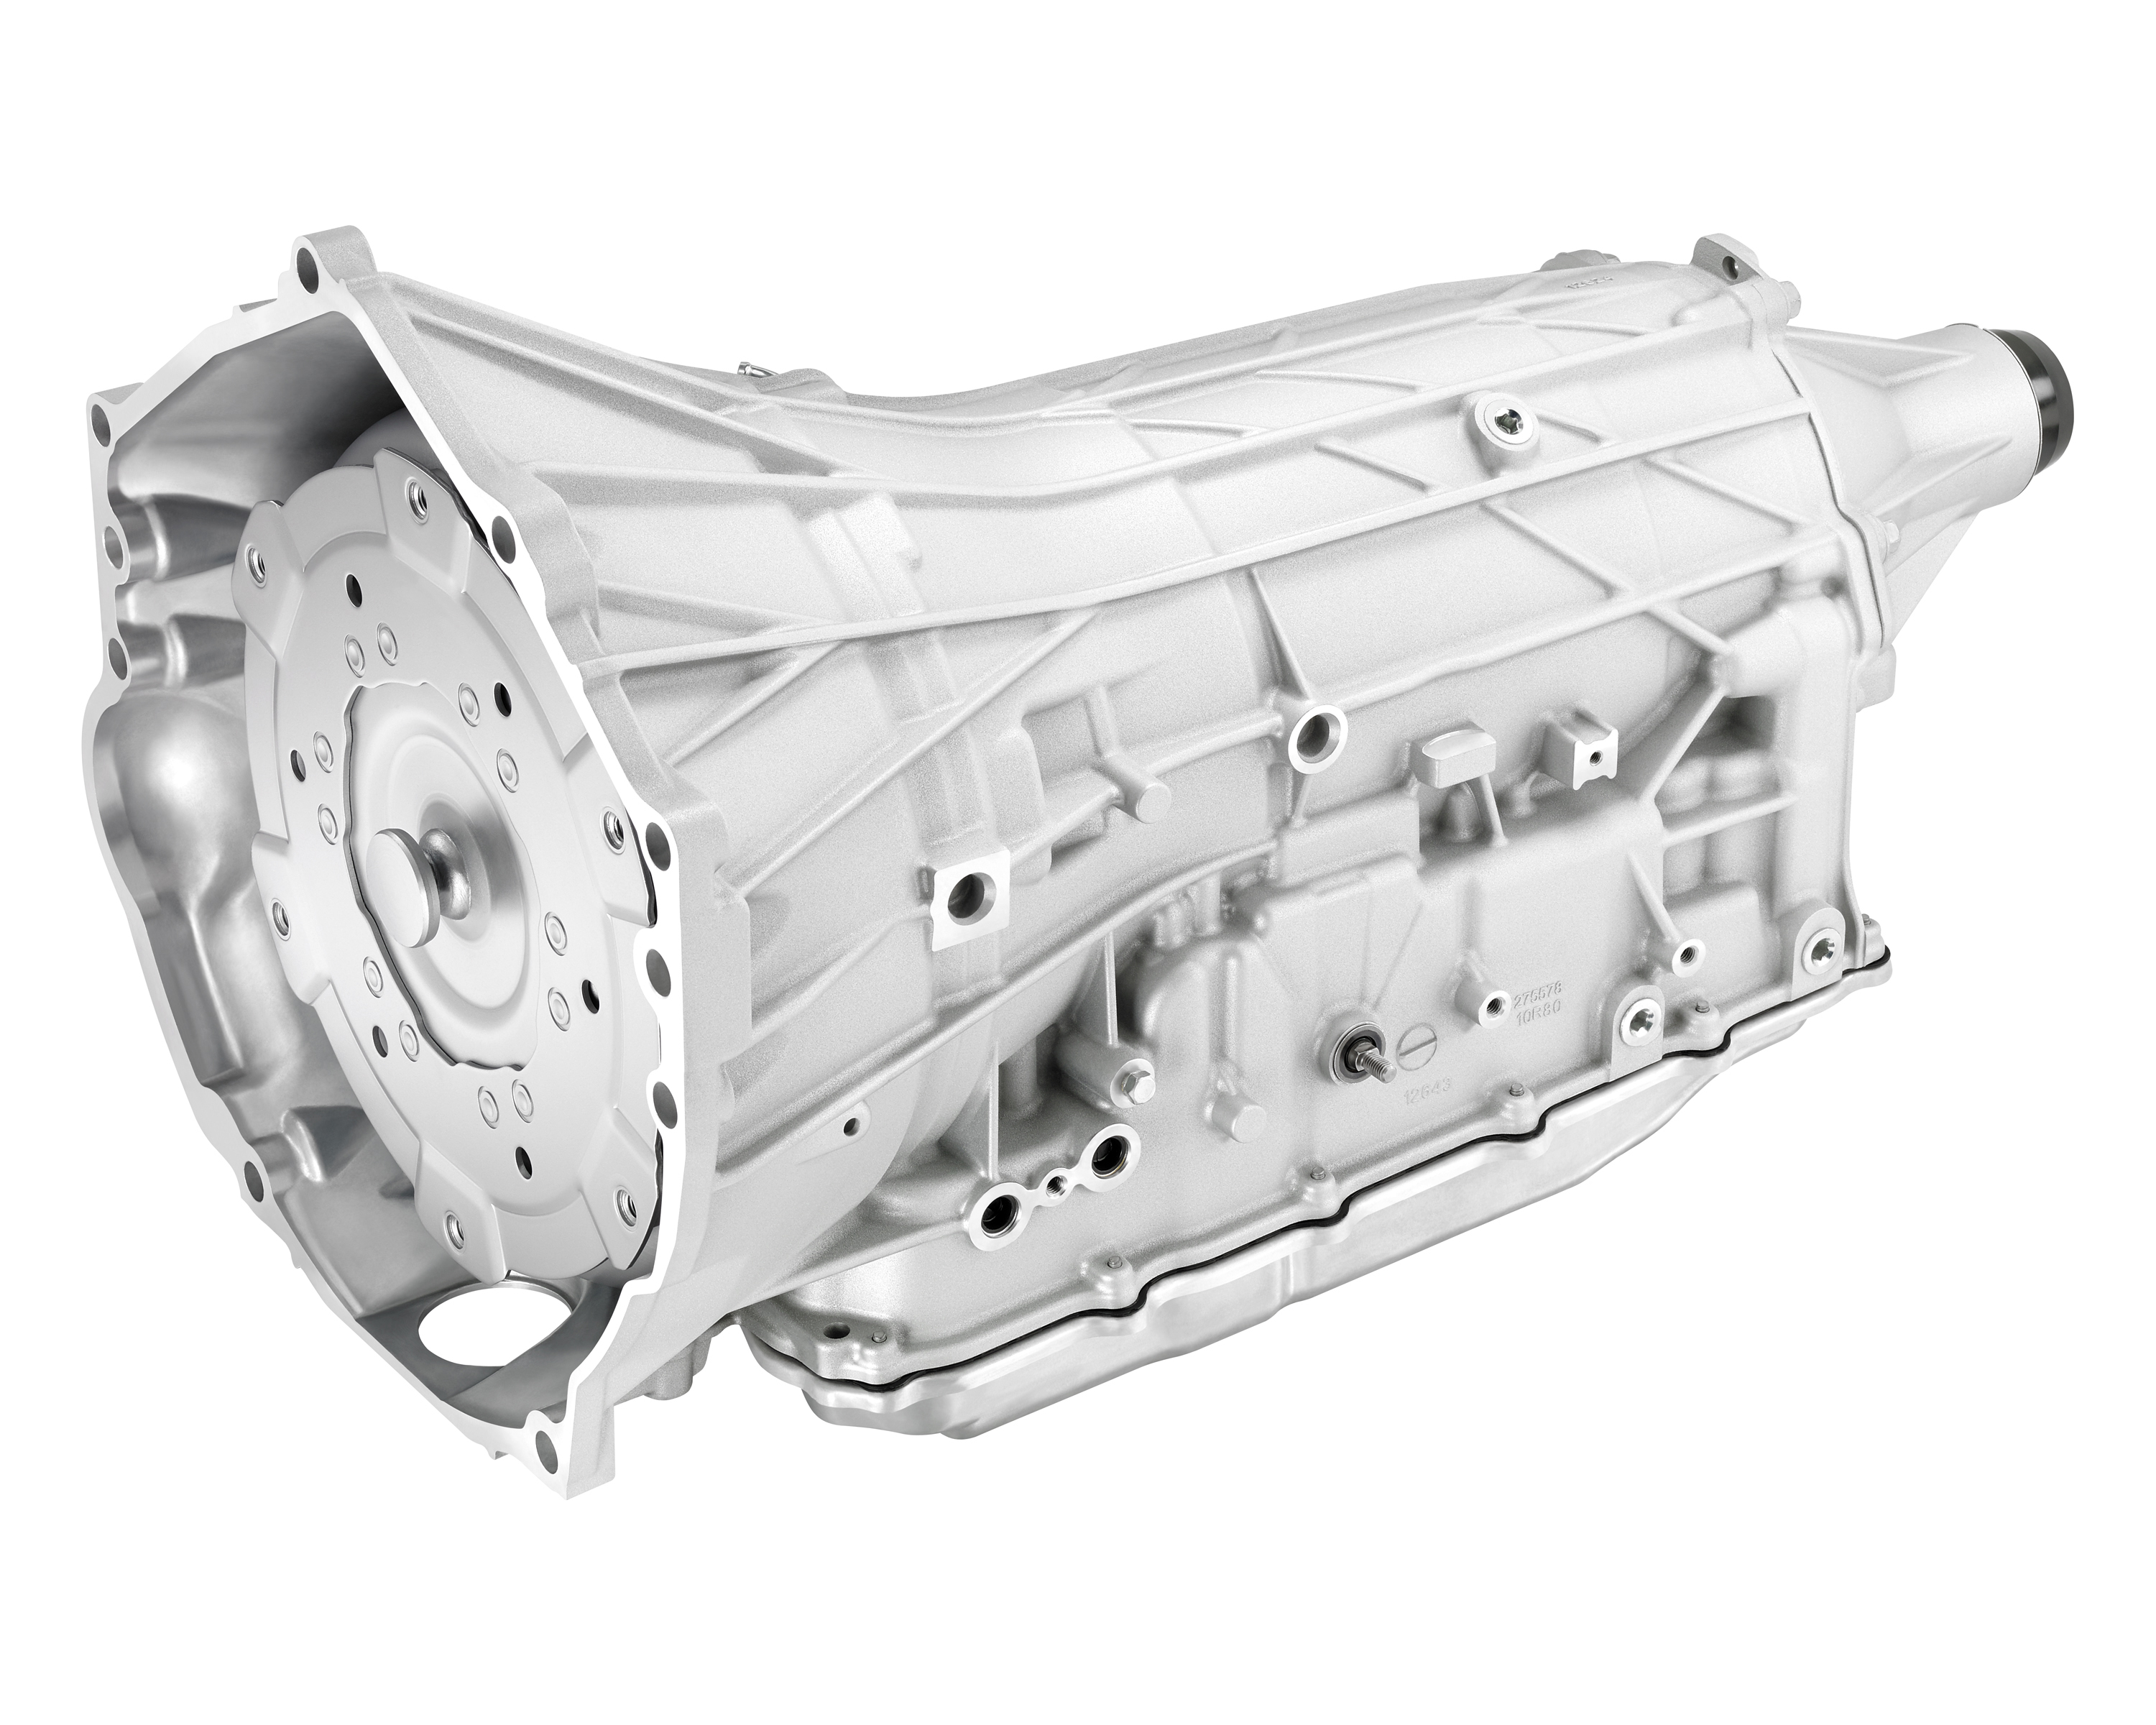 A look inside gm s new 10 speed automatic